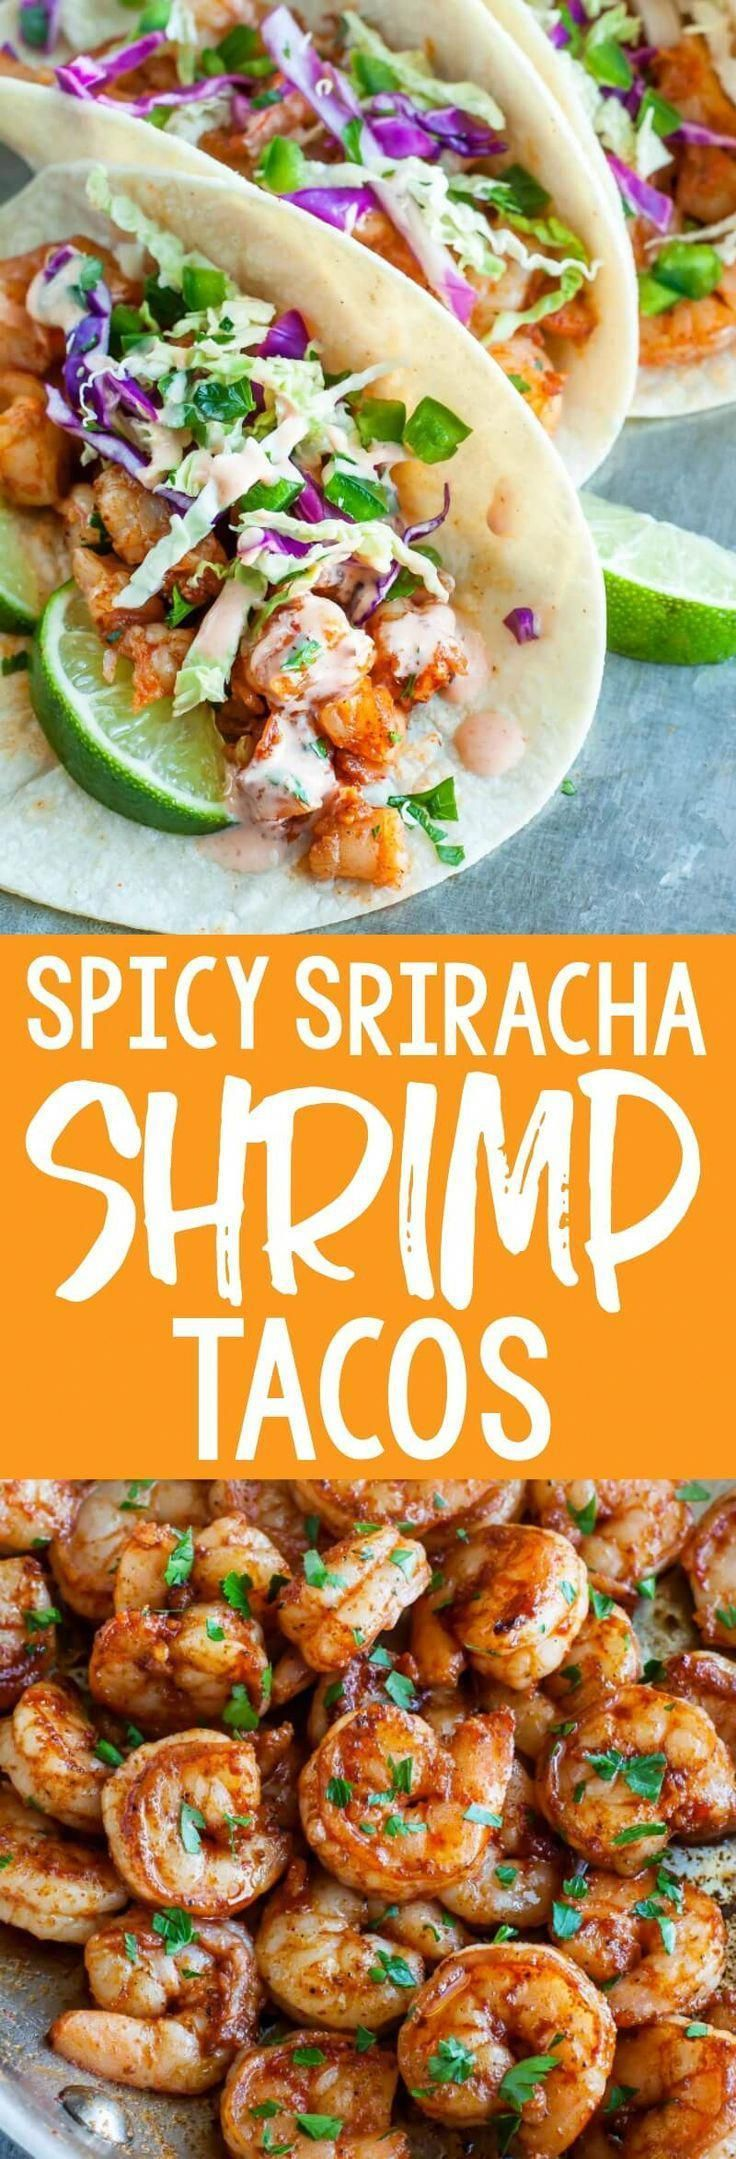 Photo of Spicy Sriracha Shrimp Tacos with Cilantro Lime Slaw – Peas And Crayons